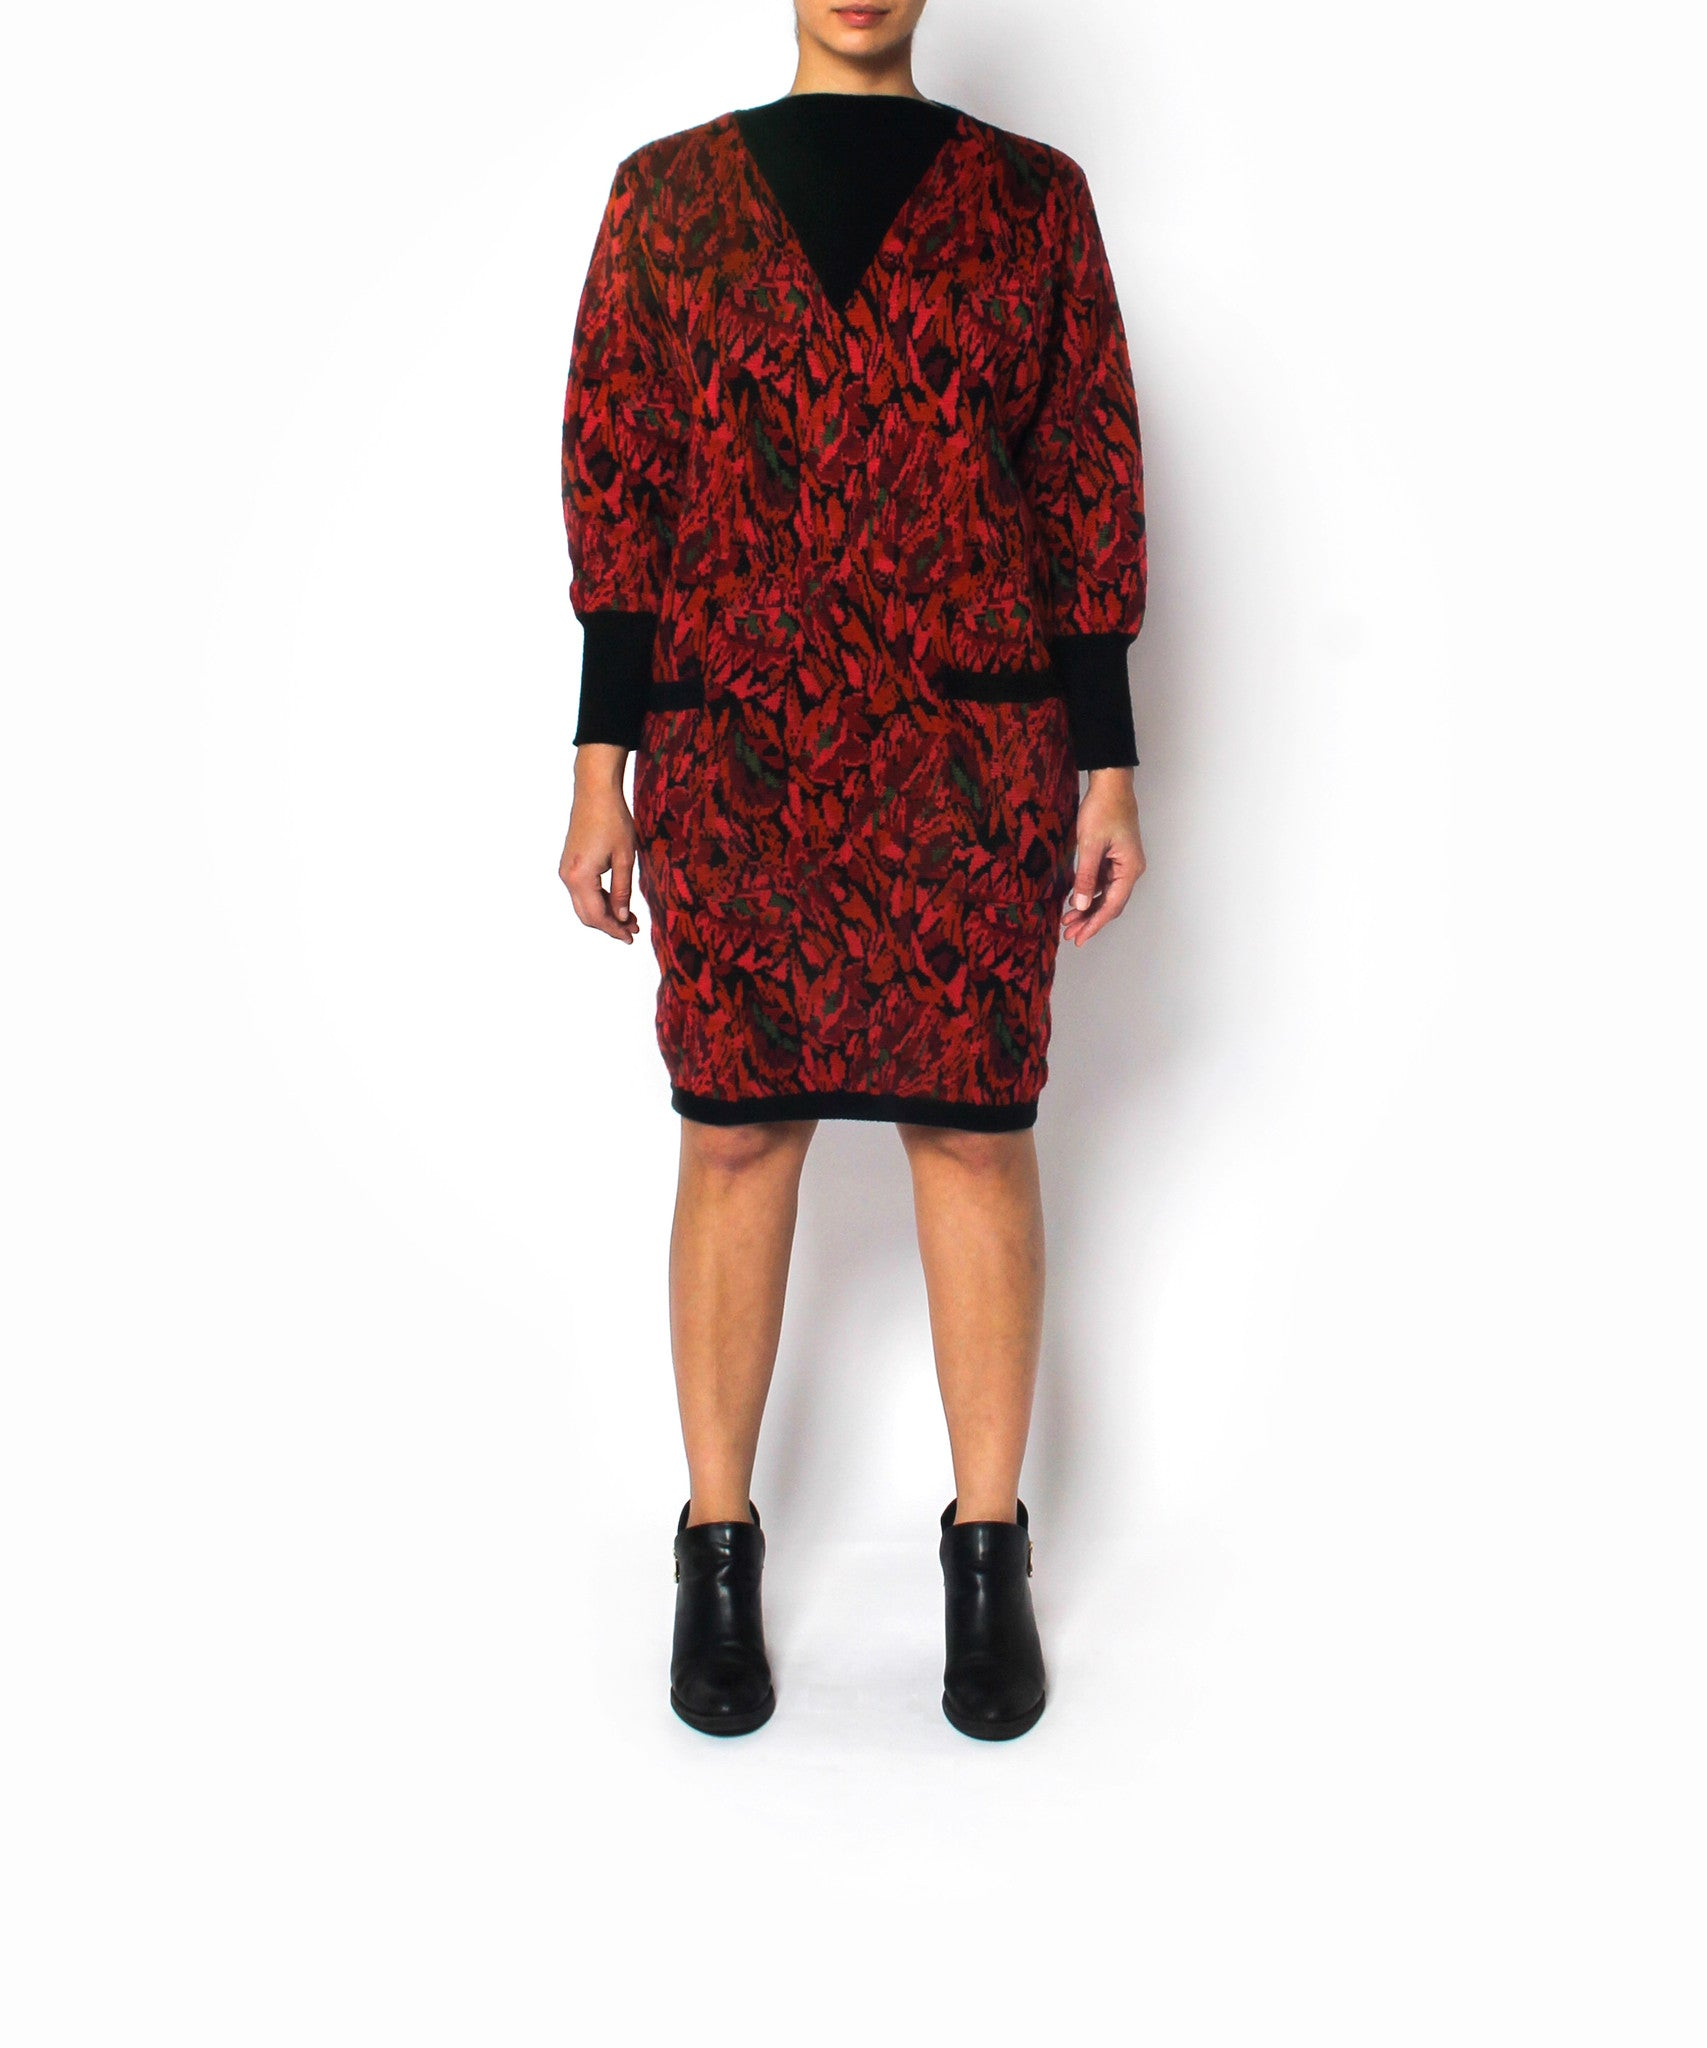 Saint Laurent 1980s Abstract Sweater Dress